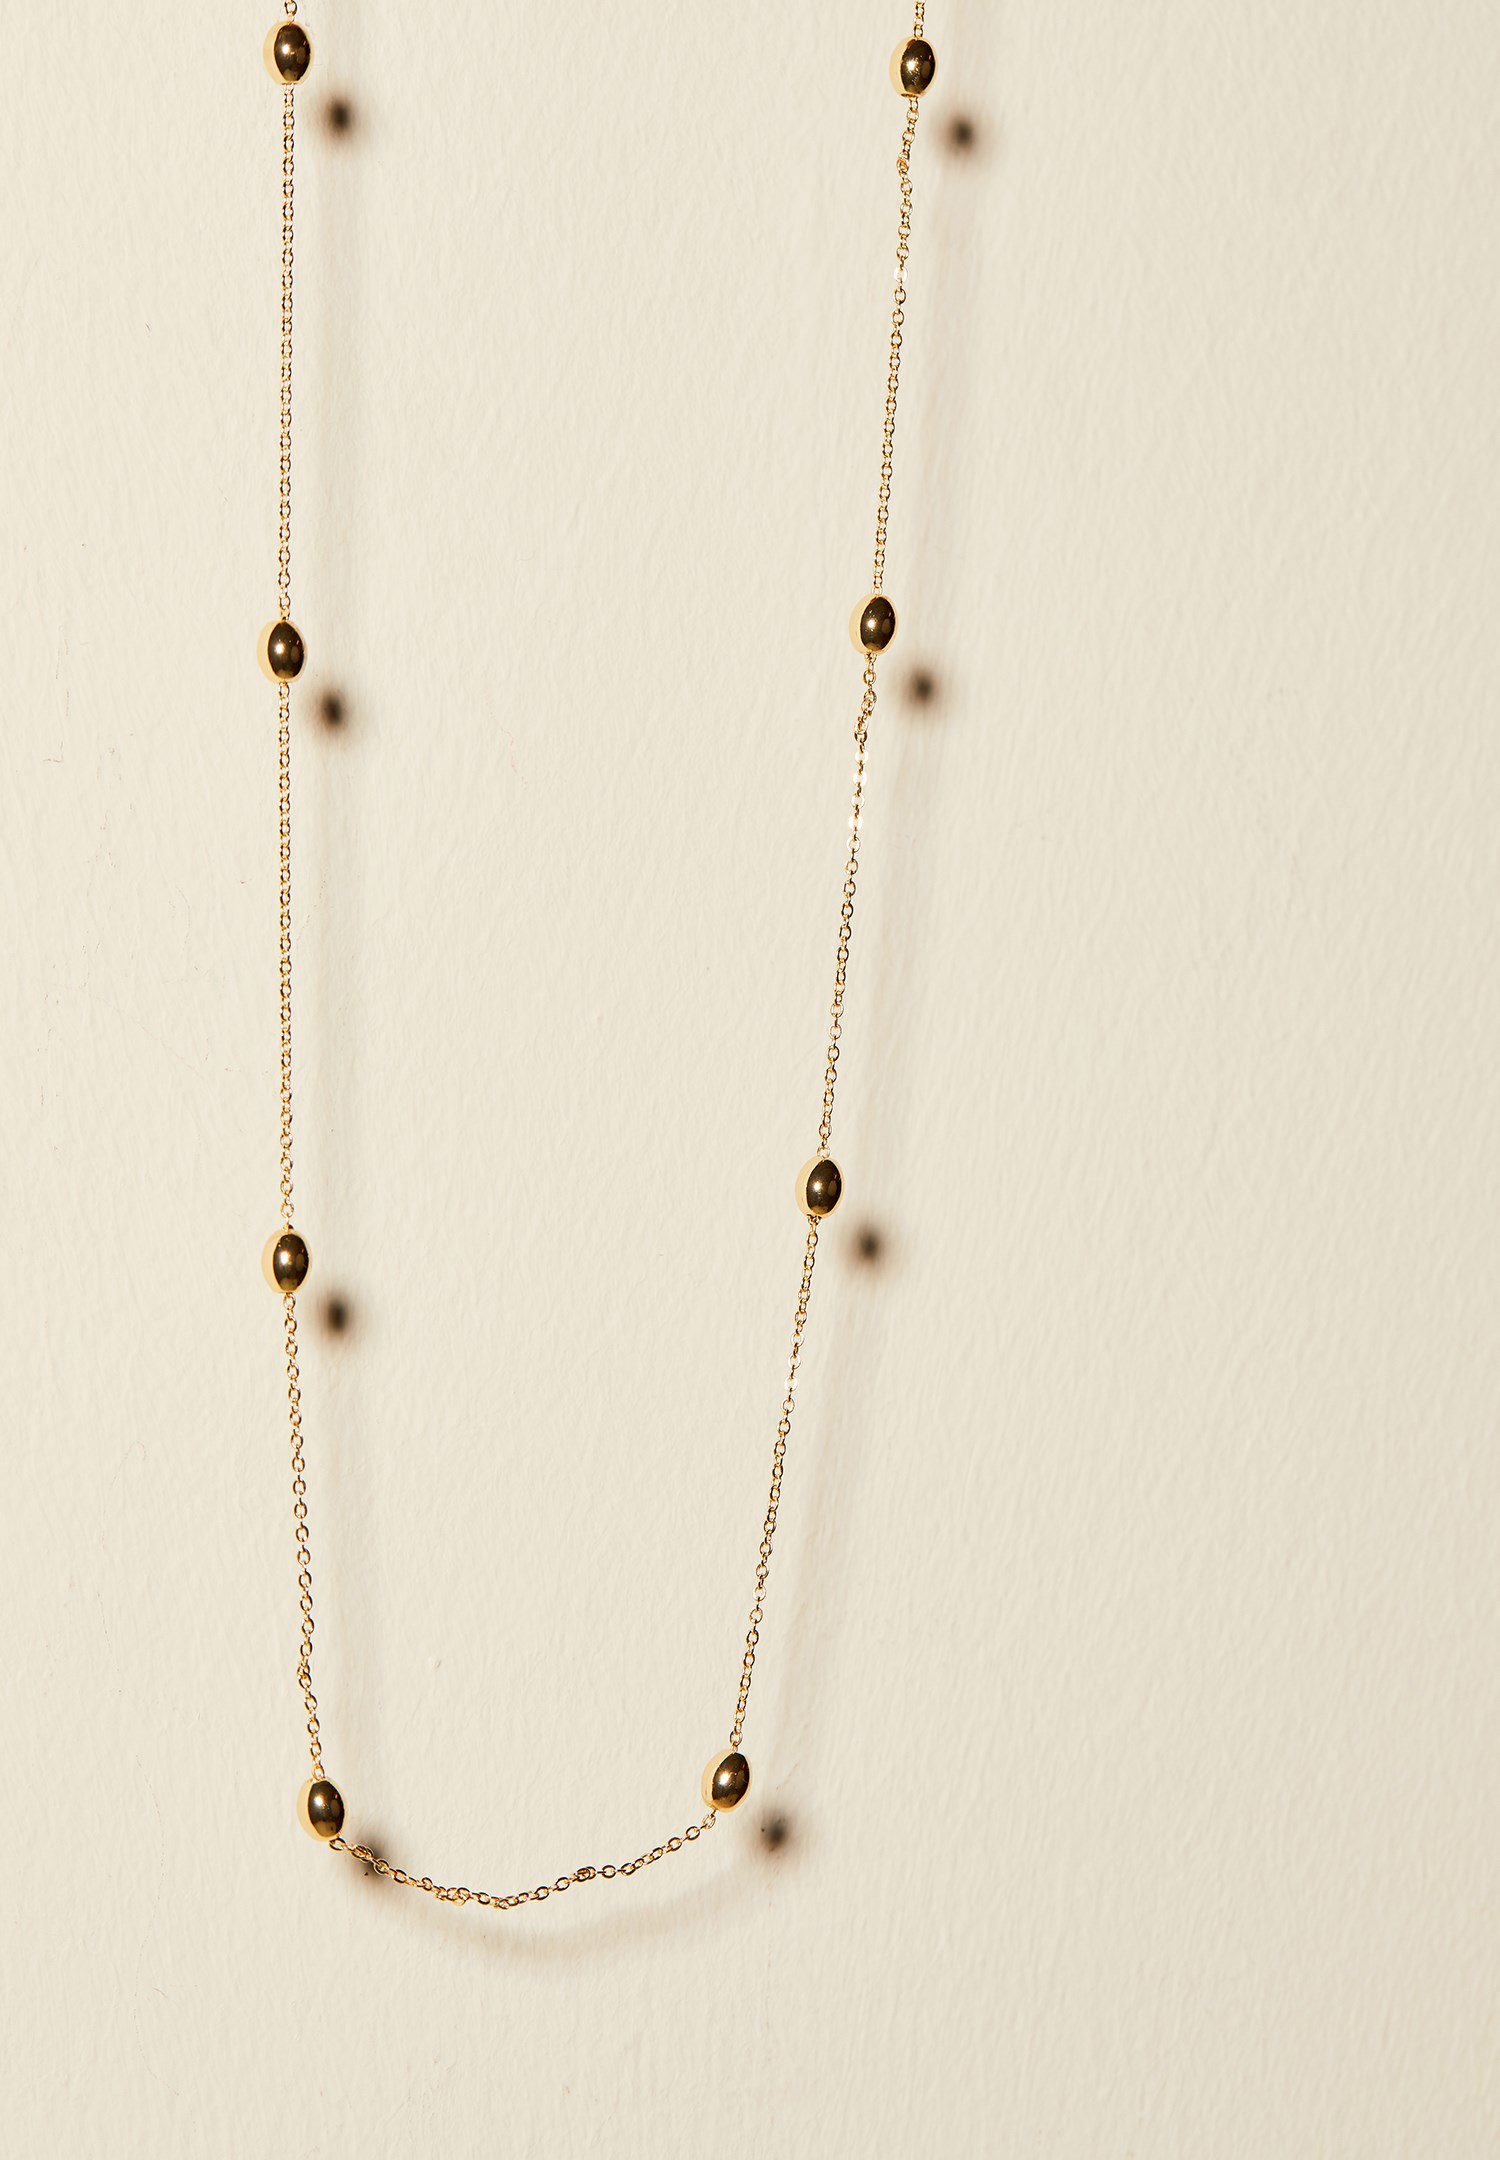 Women Mixed Chain Necklace with Bead Details